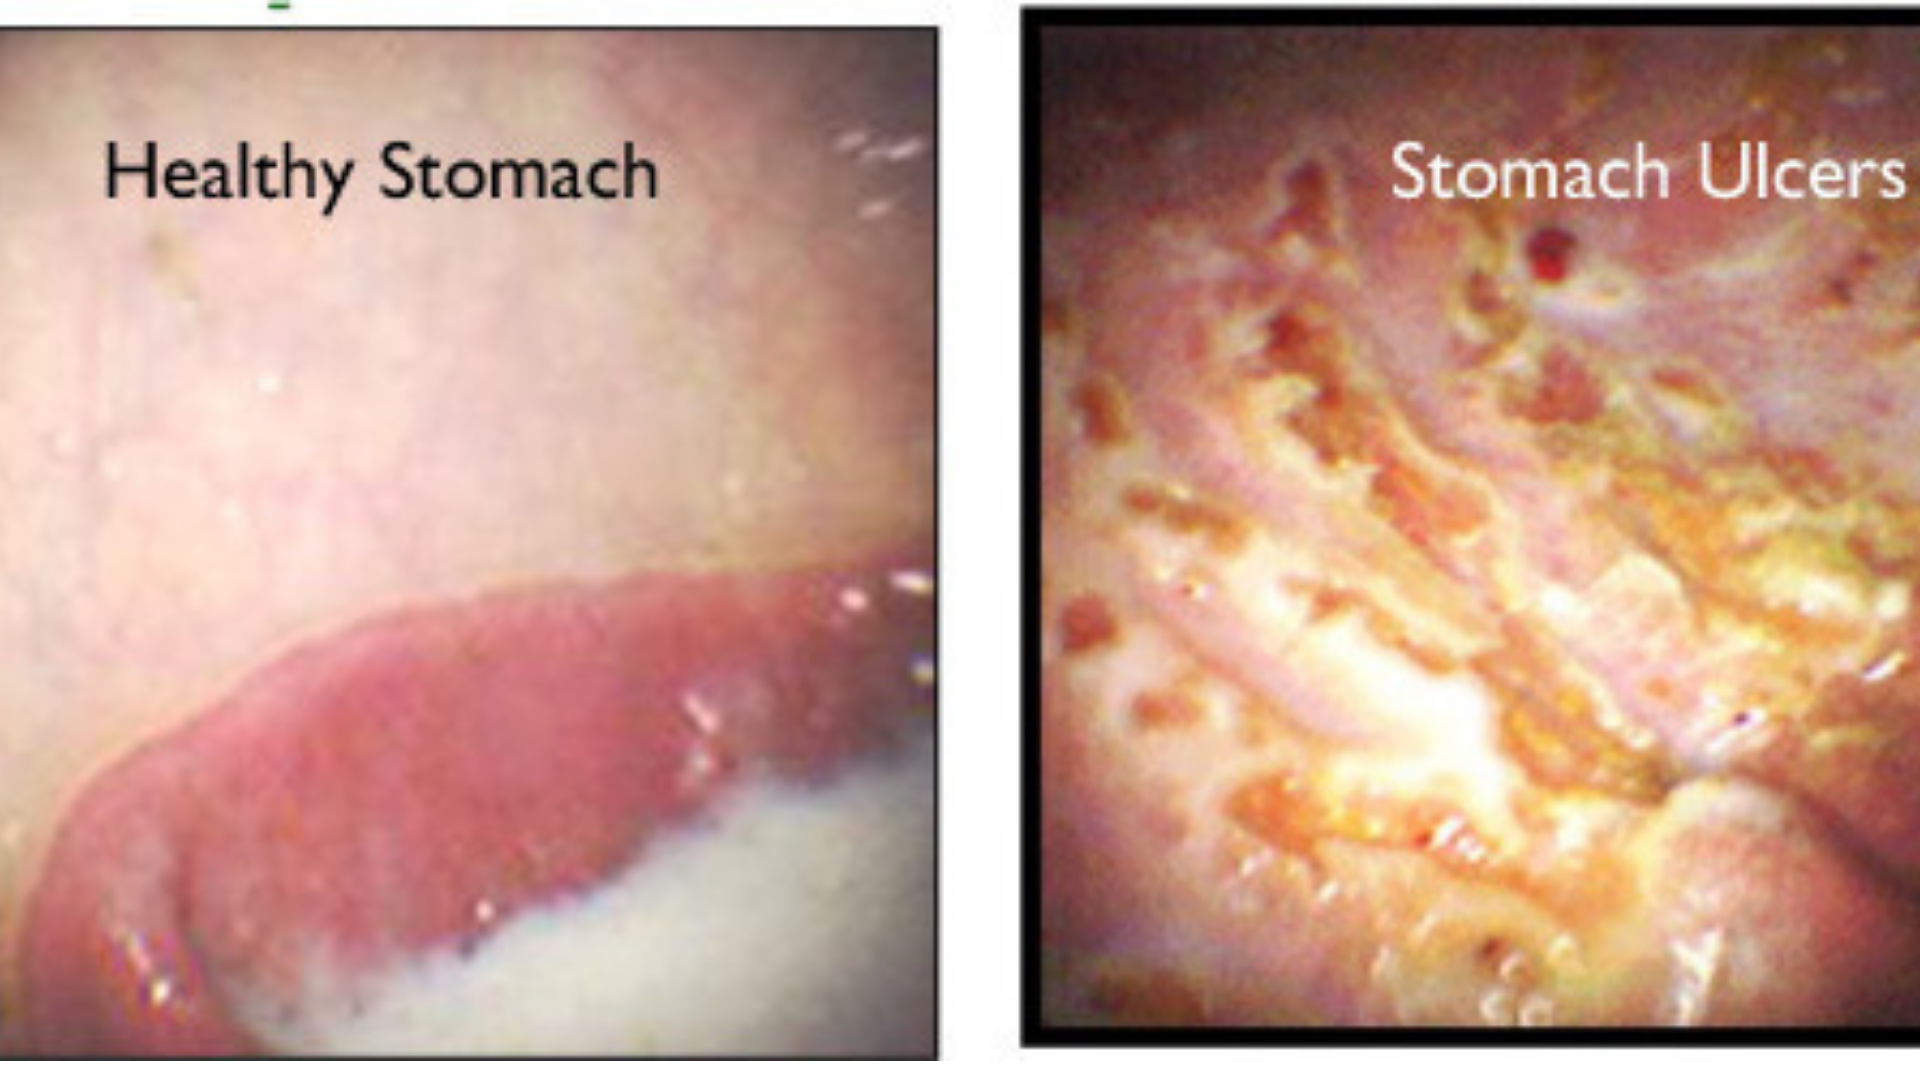 Gastroscopy images of healthy and ulcered stomachs